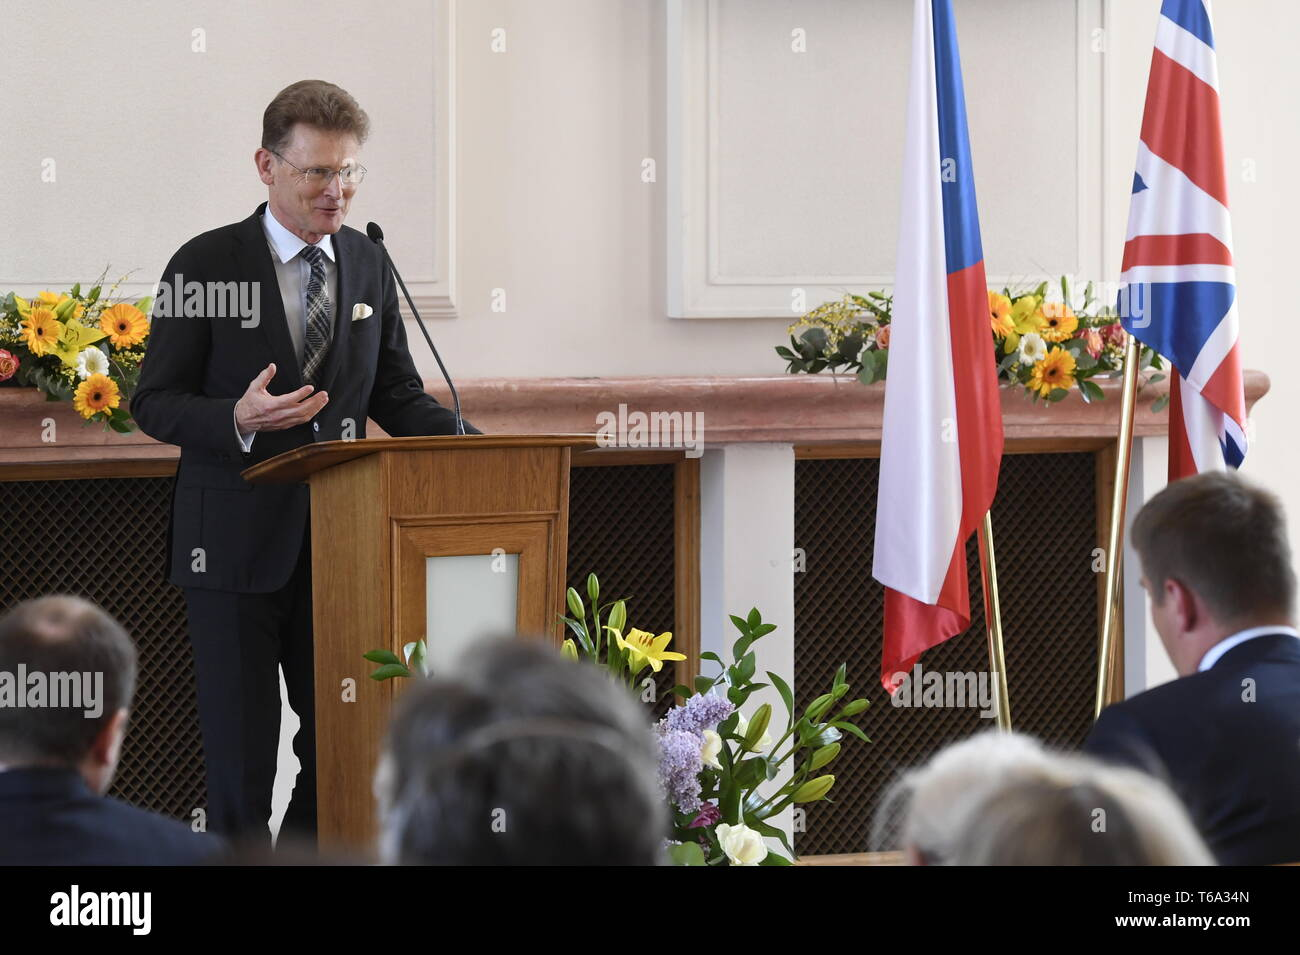 Prague, Czech Republic. 30th Apr, 2019. British Ambassador to the Czech Republic Nicholas Archer remembers organisers of children's rescue transport from Czech lands controlled by Nazi Germany to Britain in 1939 and thank families that accepted Czech children, on April 30, 2019, in Prague, Czech Republic. Credit: Michal Krumphanzl/CTK Photo/Alamy Live News - Stock Image